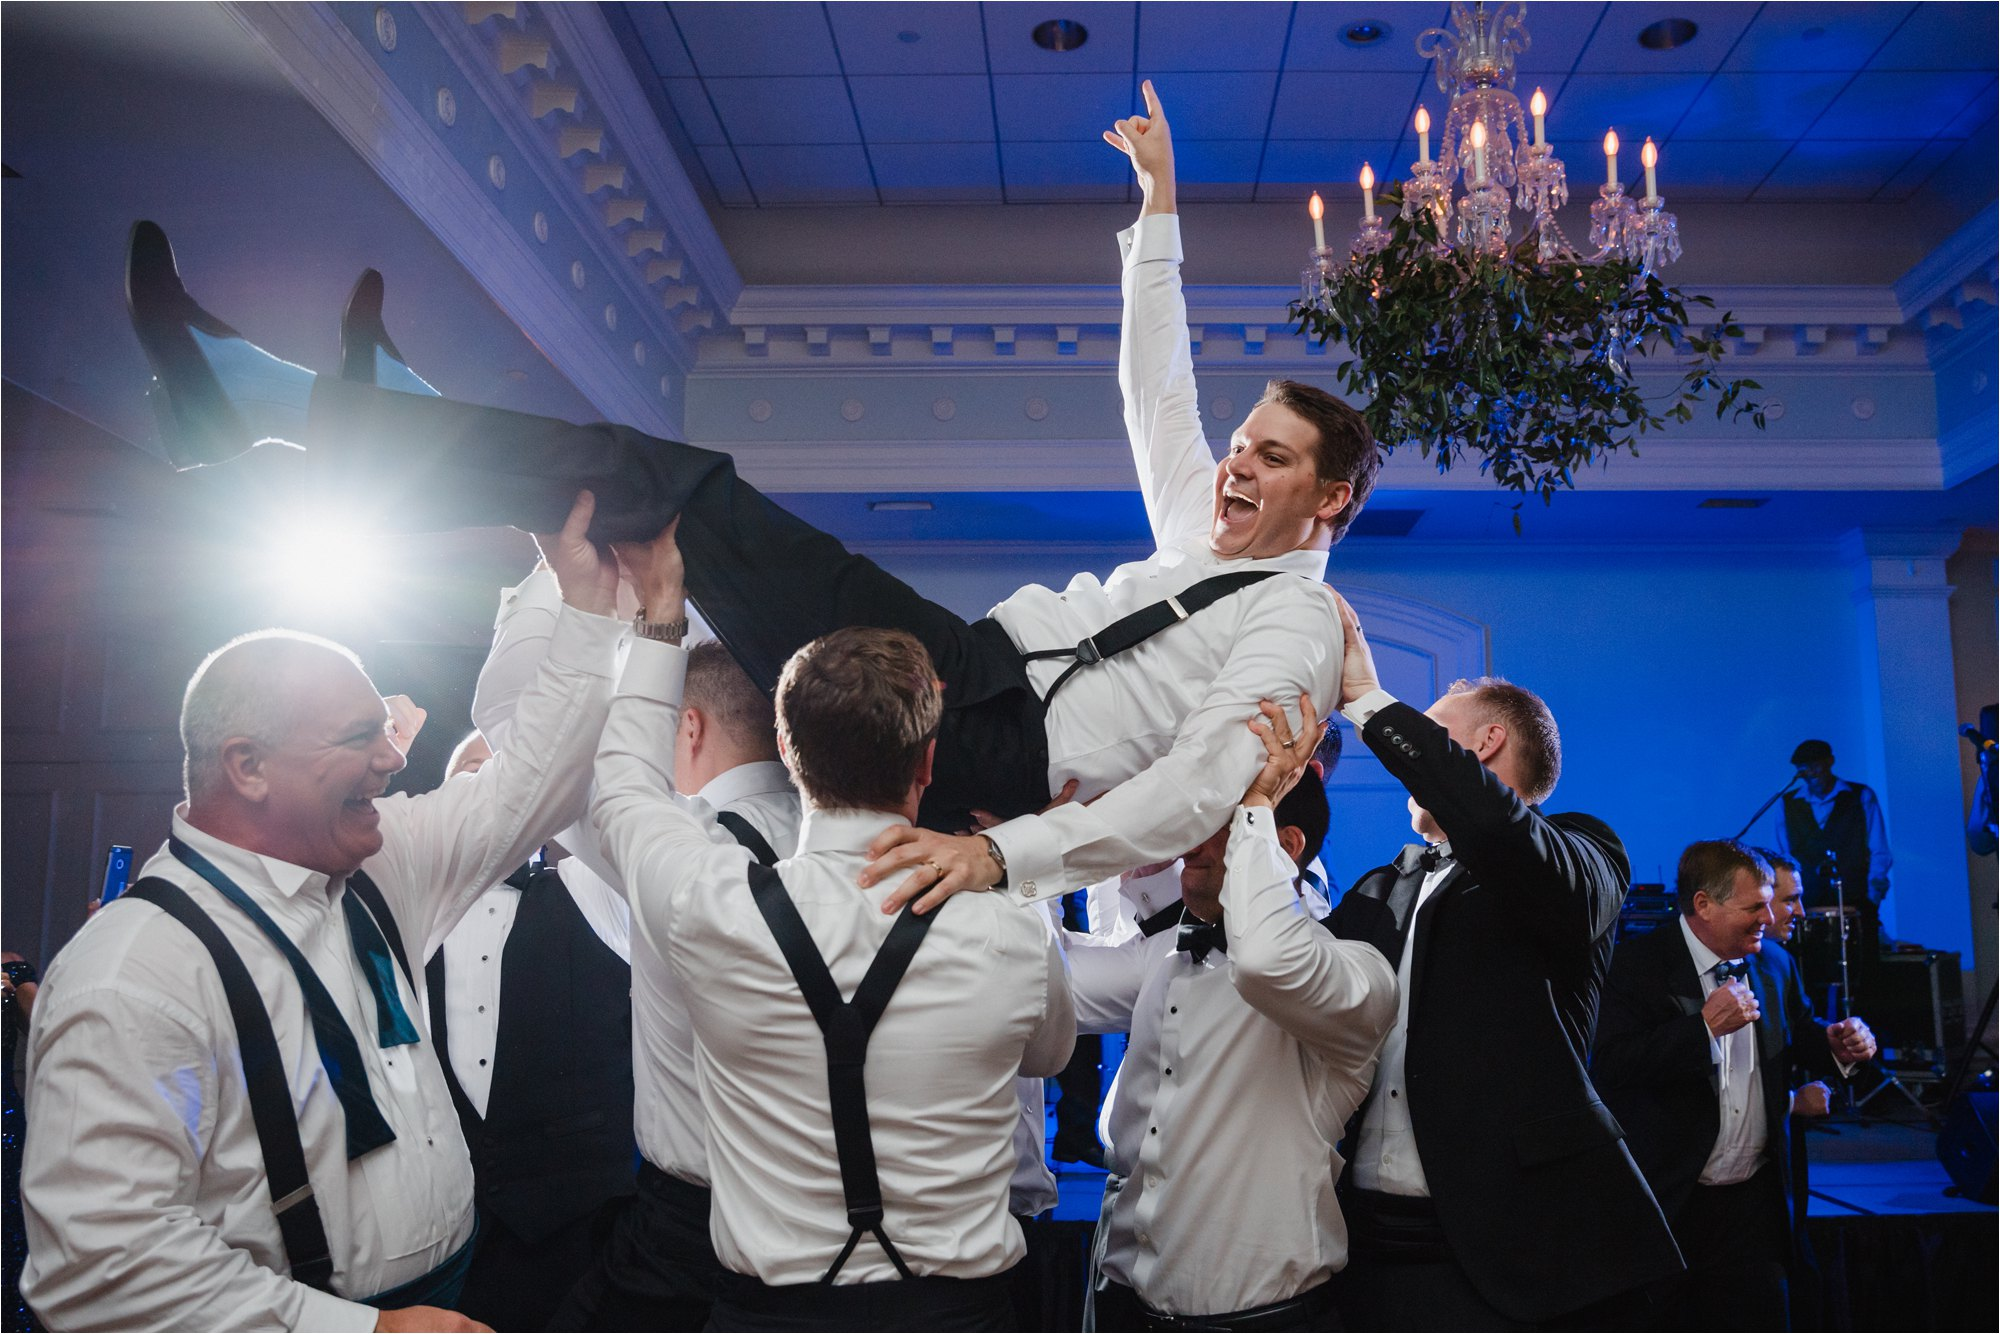 groom lifted up dancing at wedding